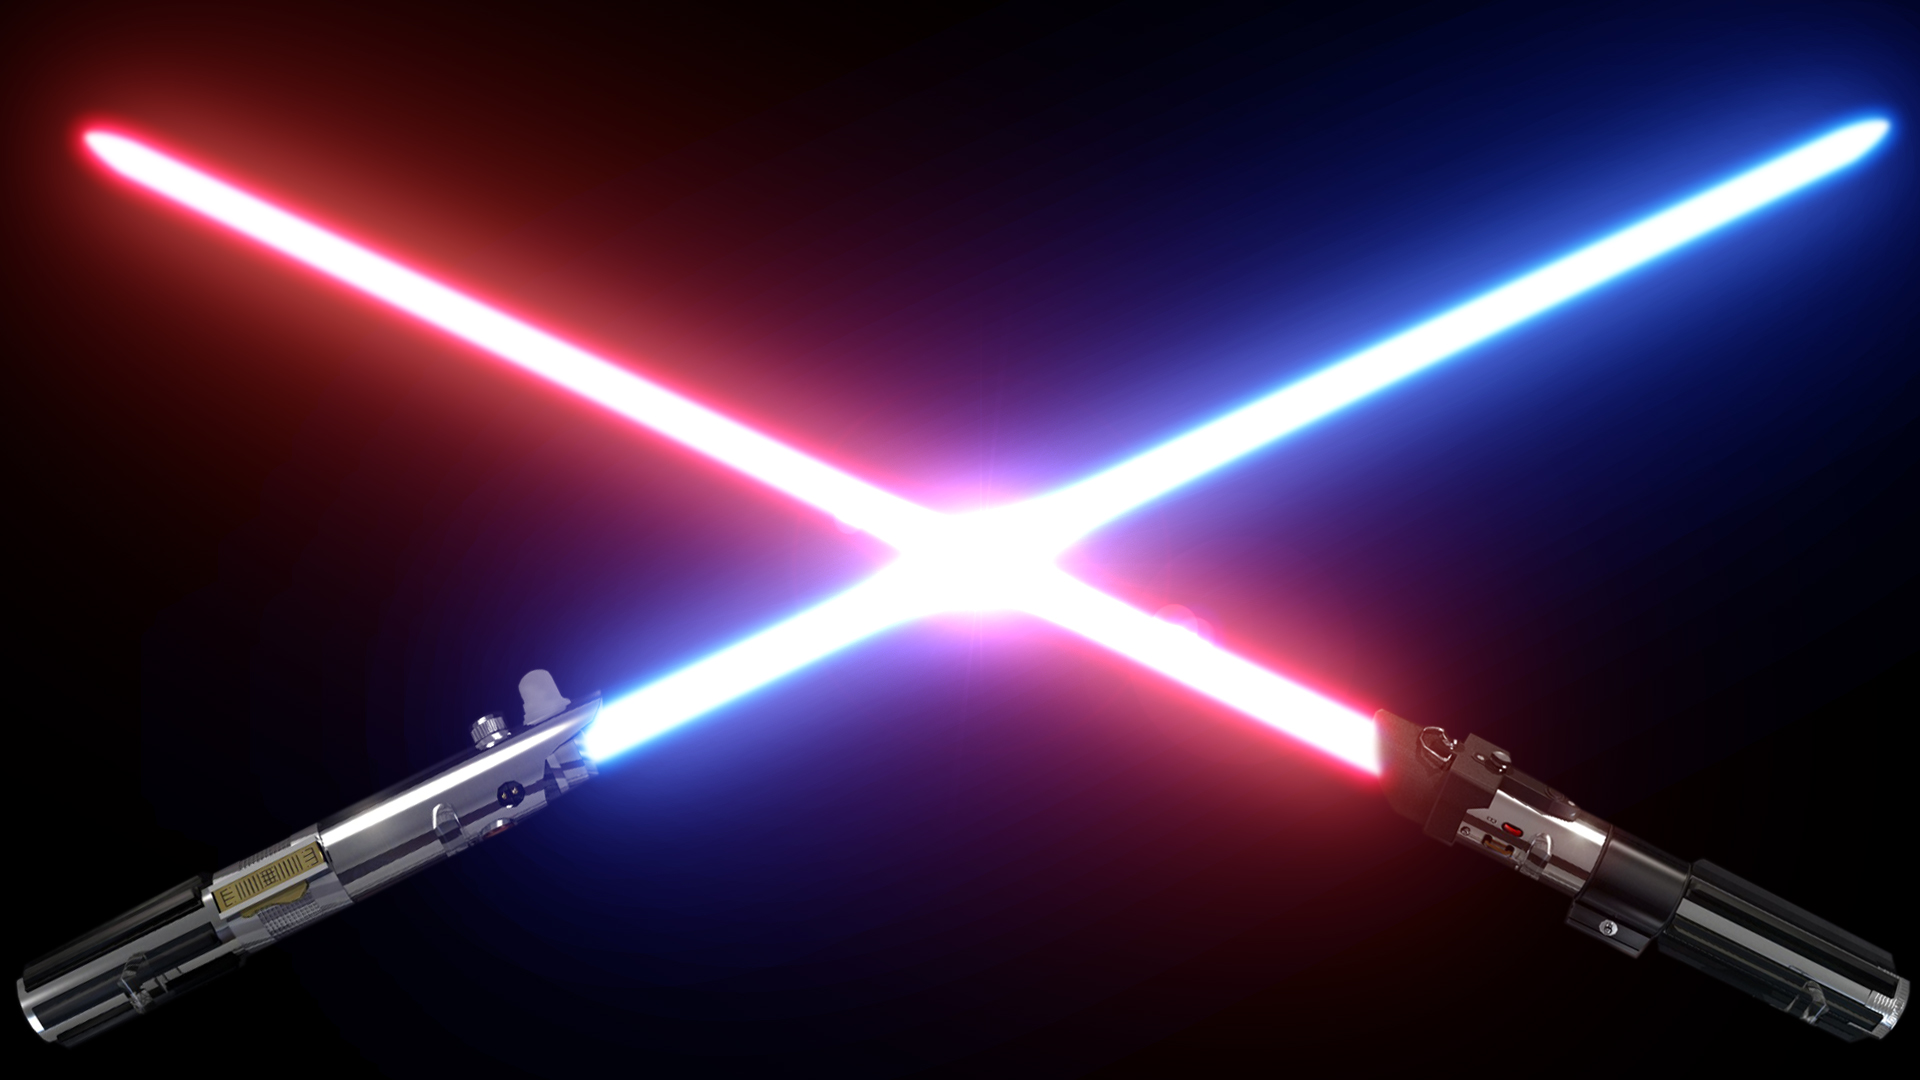 vader lightsaber luke skywalker lightsaber Star Wars Lightsabers 1920x1080